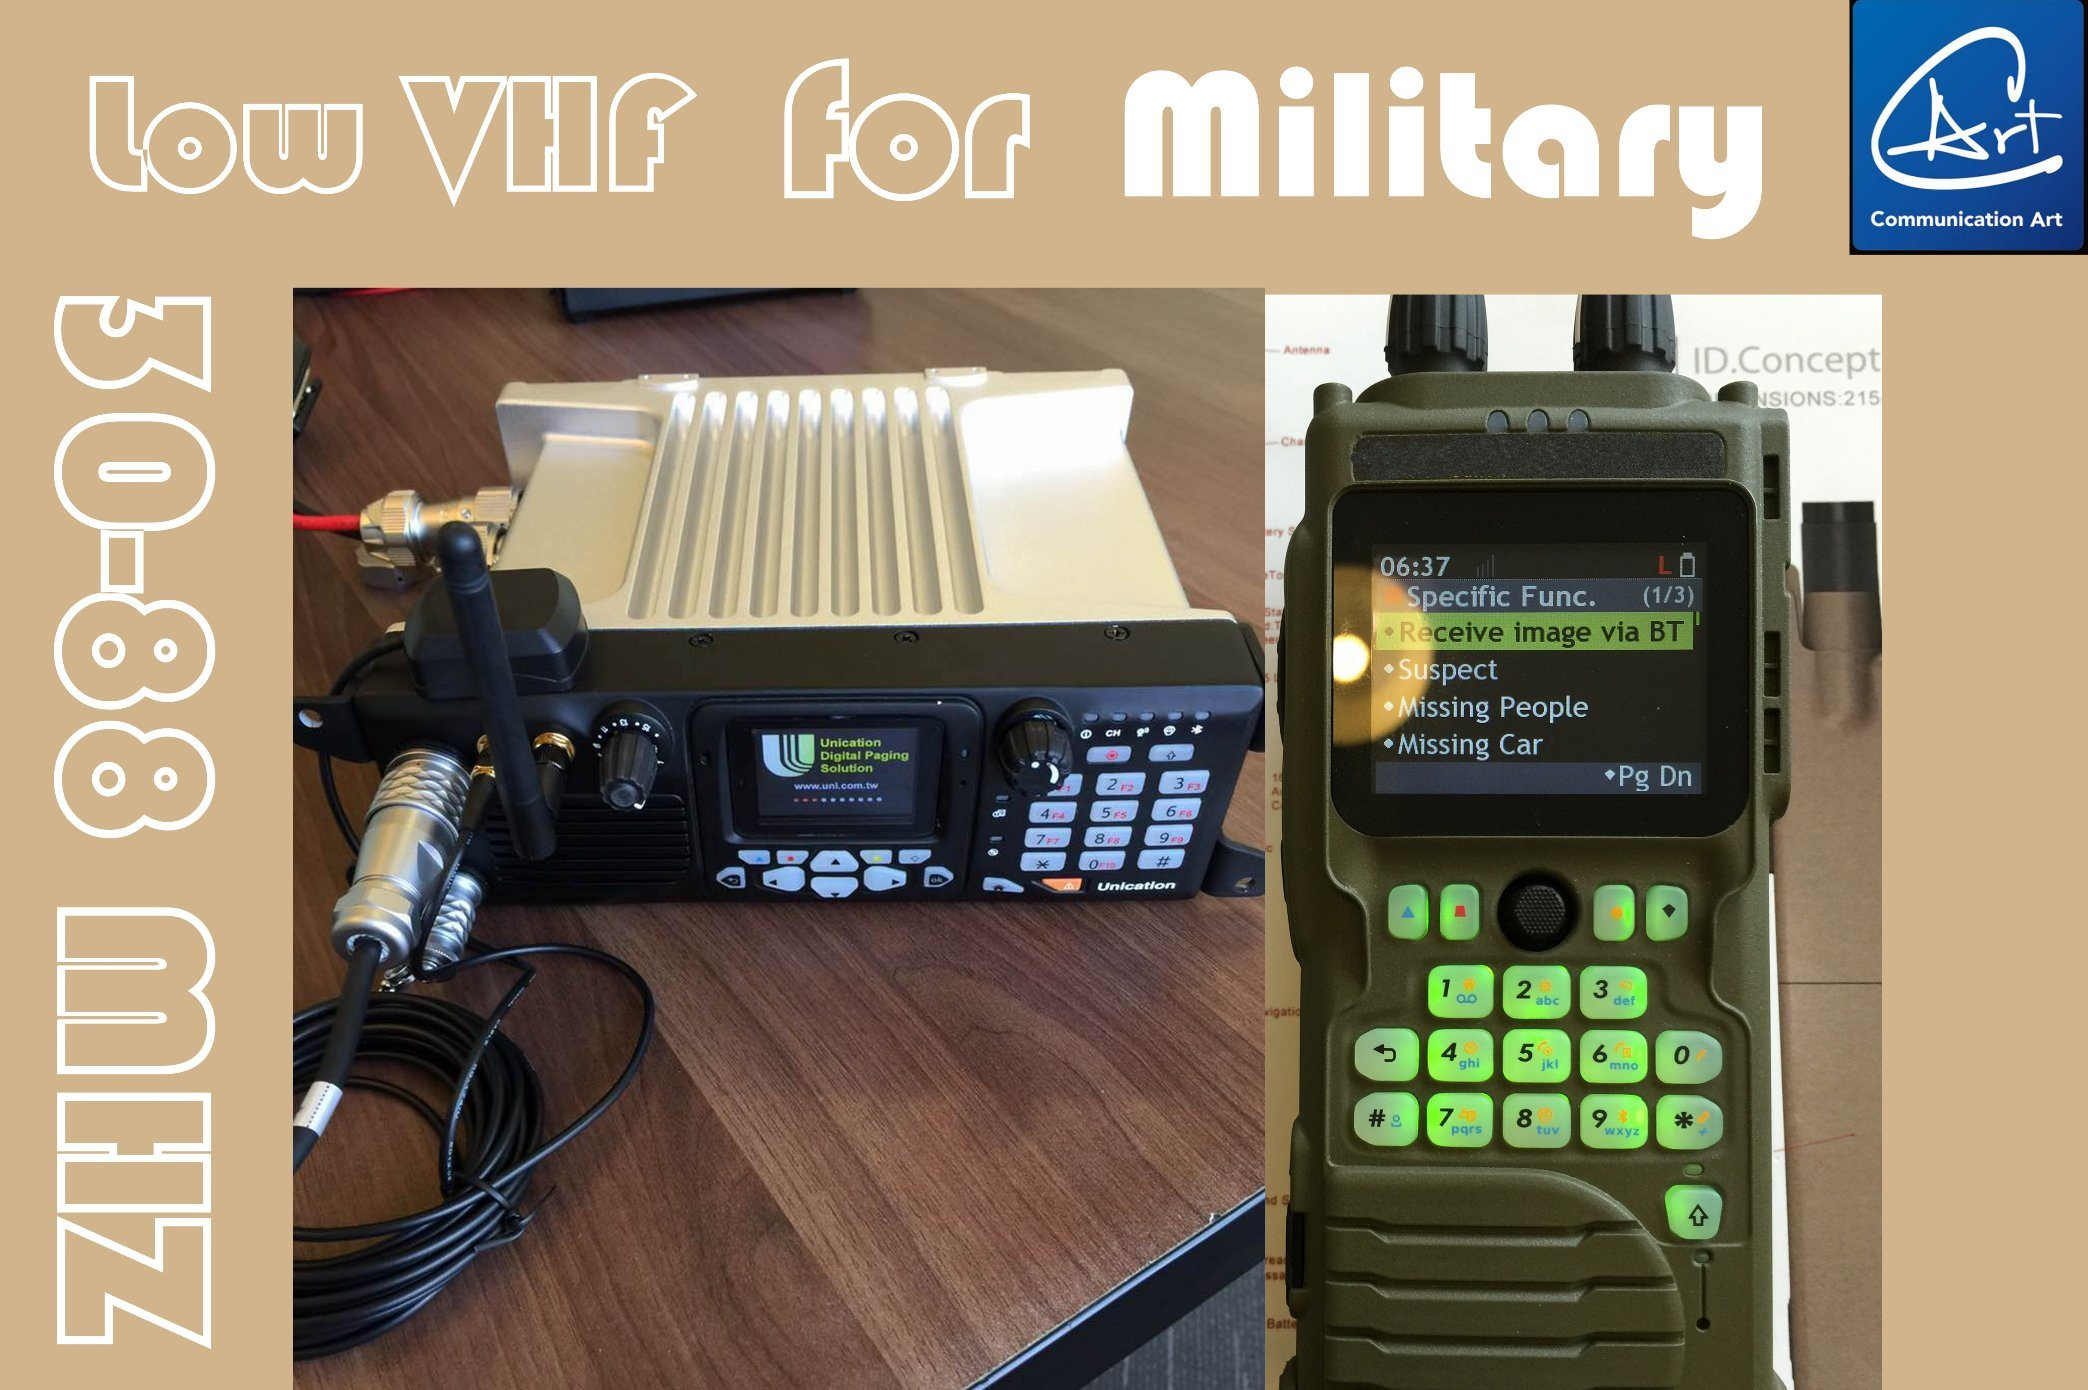 Backpack Two Way Radio, Military Low VHF Radio for Military - China